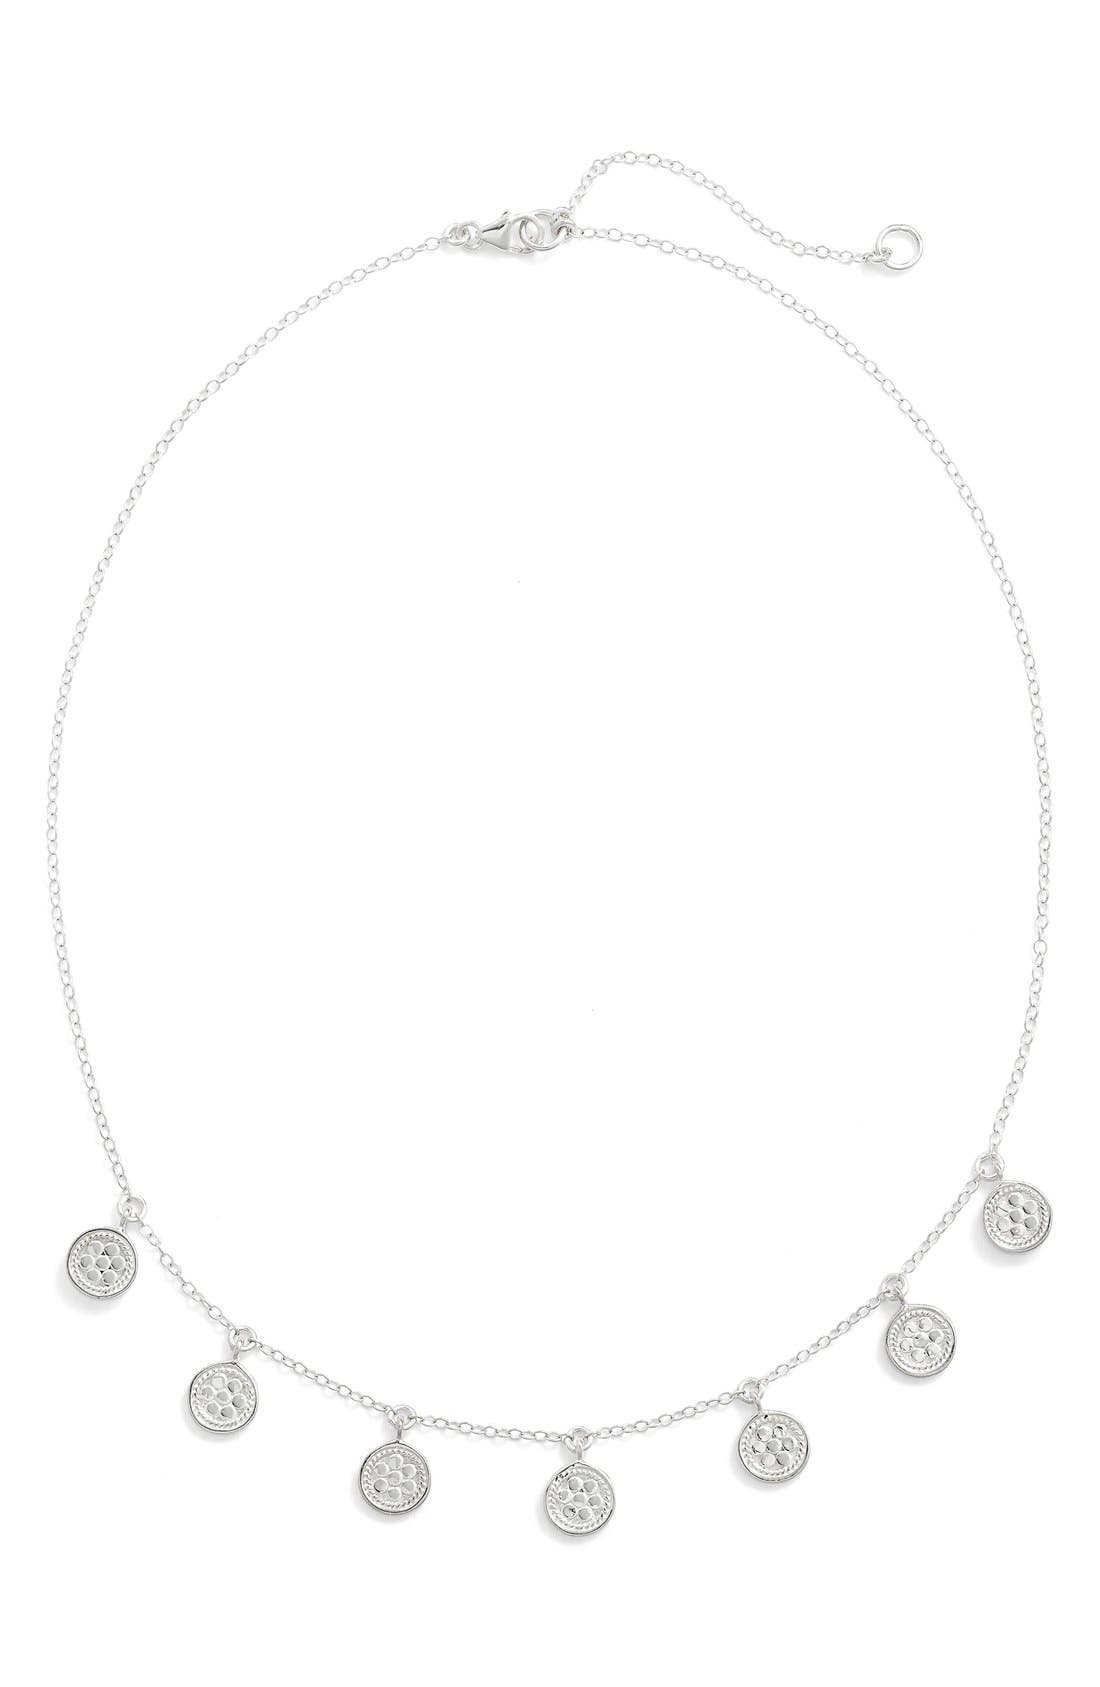 'Gili' Charm Necklace,                             Alternate thumbnail 6, color,                             SILVER